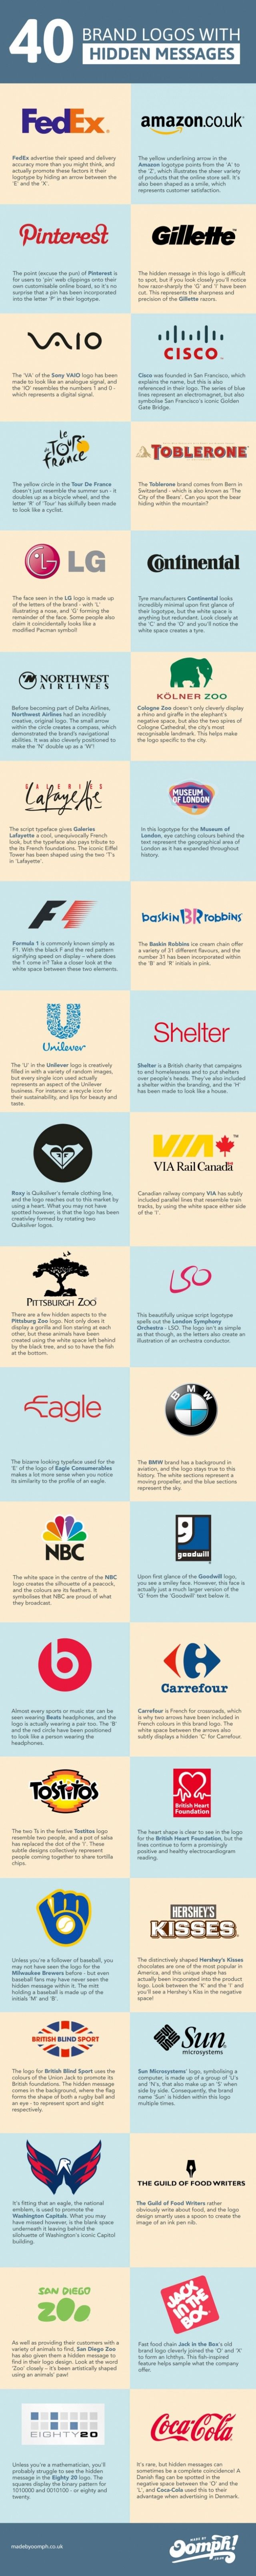 Check out these 40 creative logos with hidden messages. Have you spotted any of these clever secret hidden meanings / symbols before?